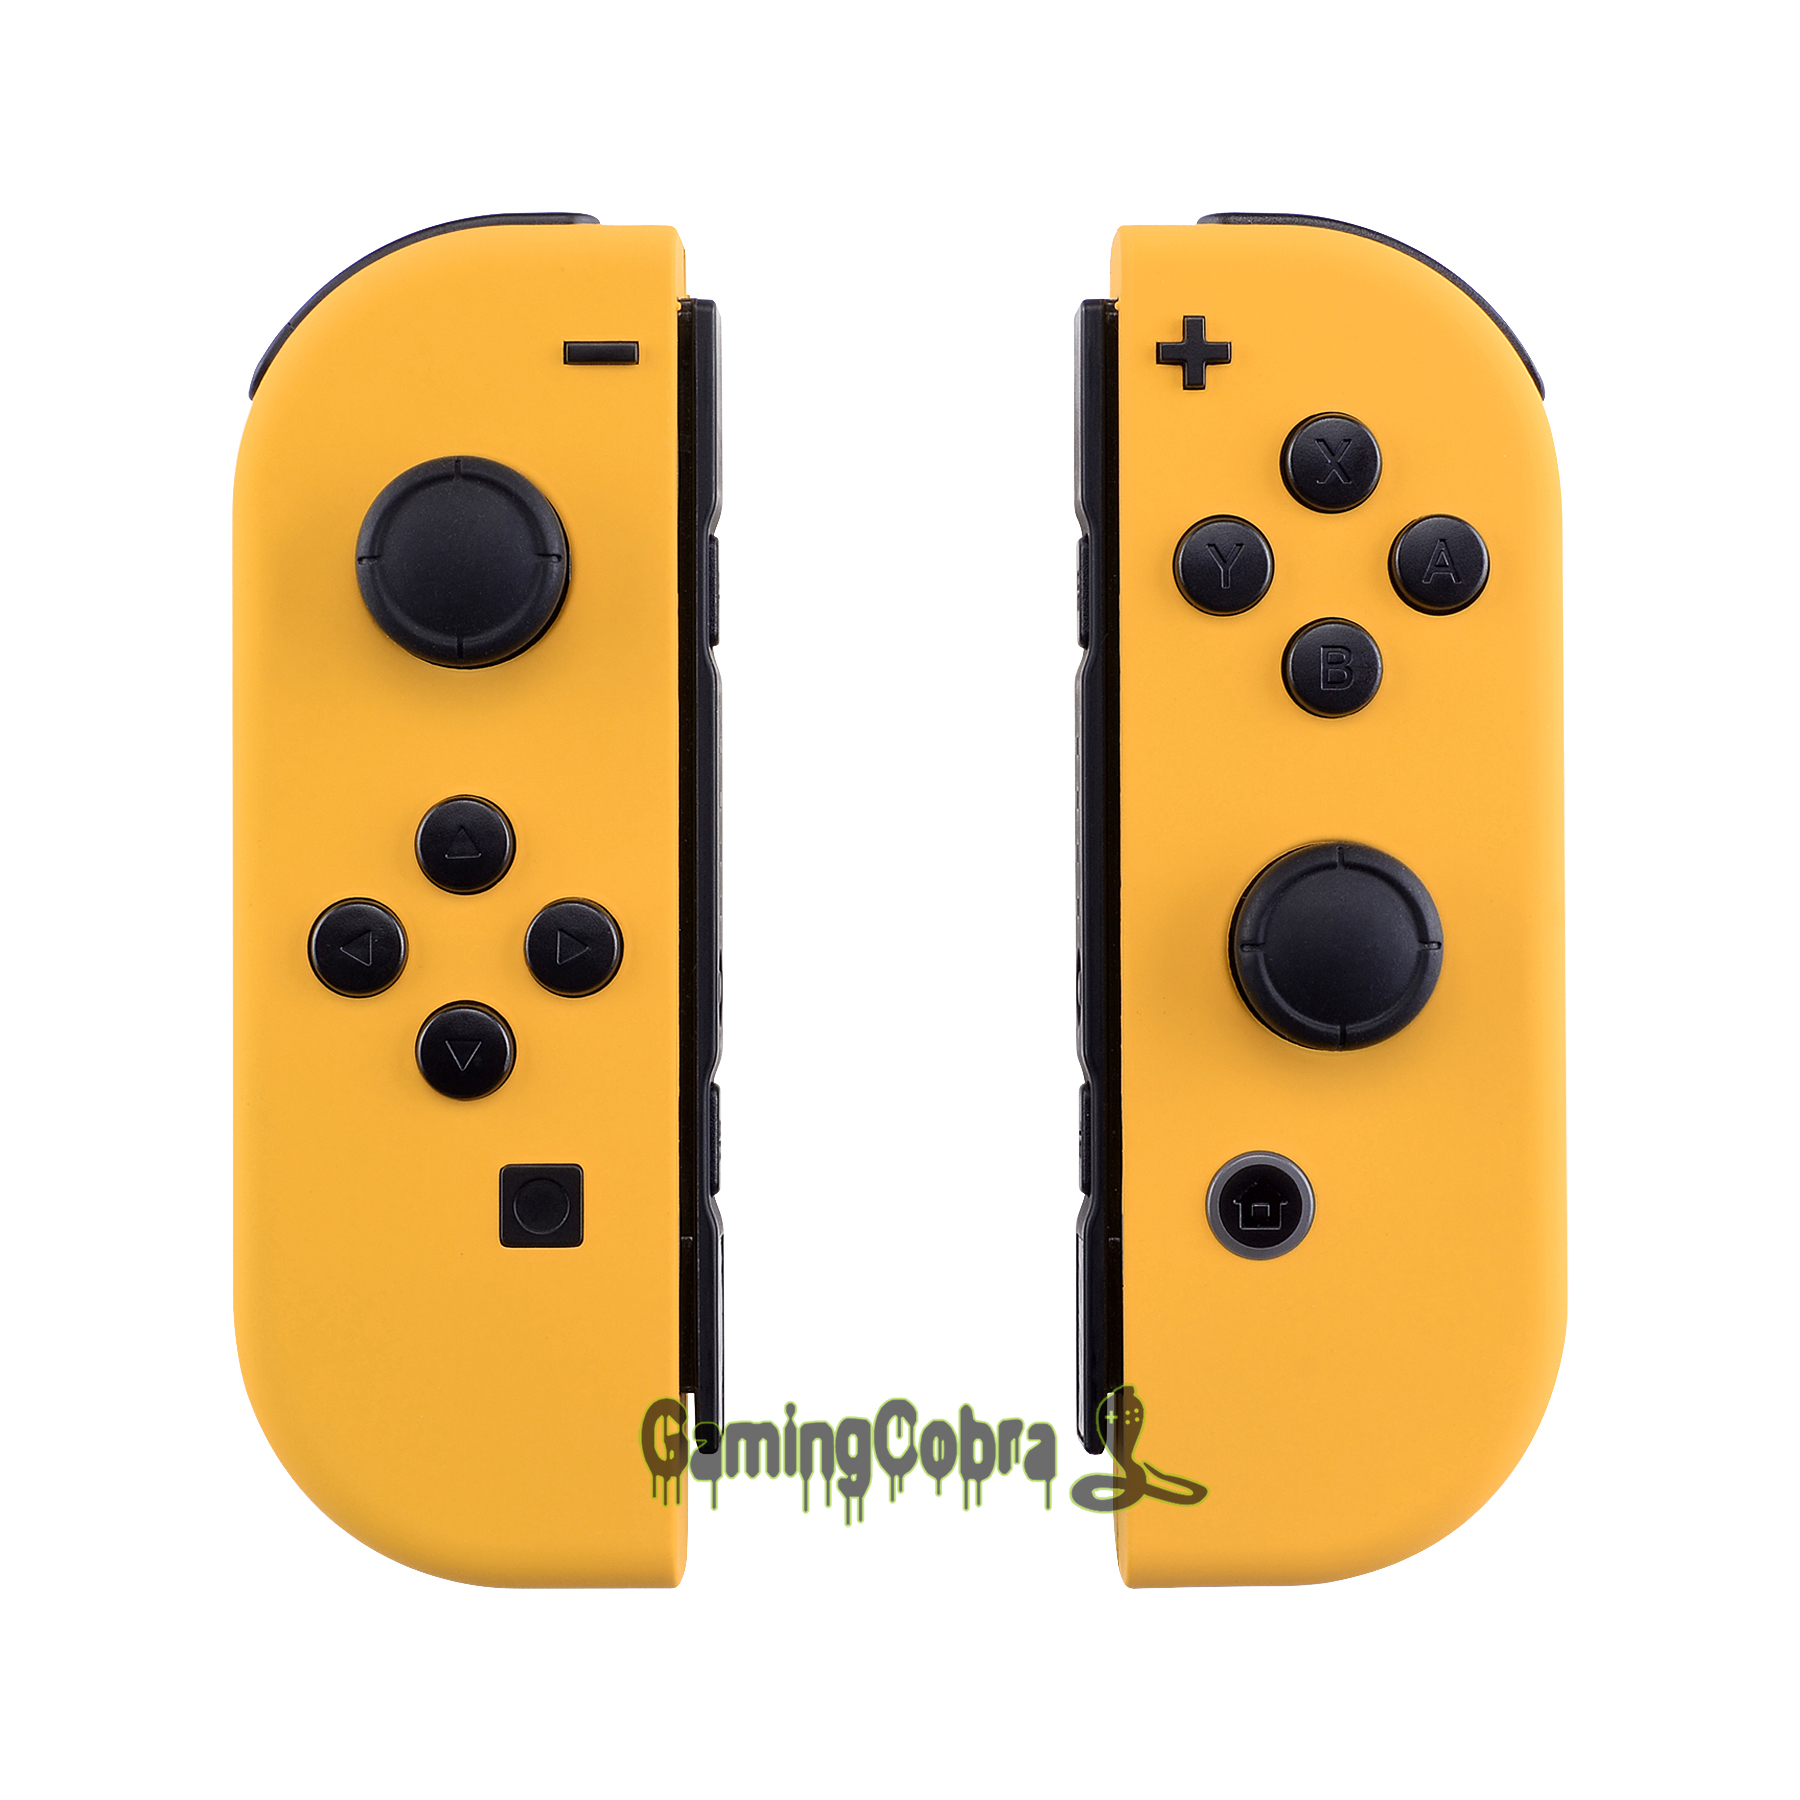 Custom Soft Touch Caution Yellow Controller Housing With Full Set Buttons DIY Replacement Shell Case For Nintendo Switch Joy-Con